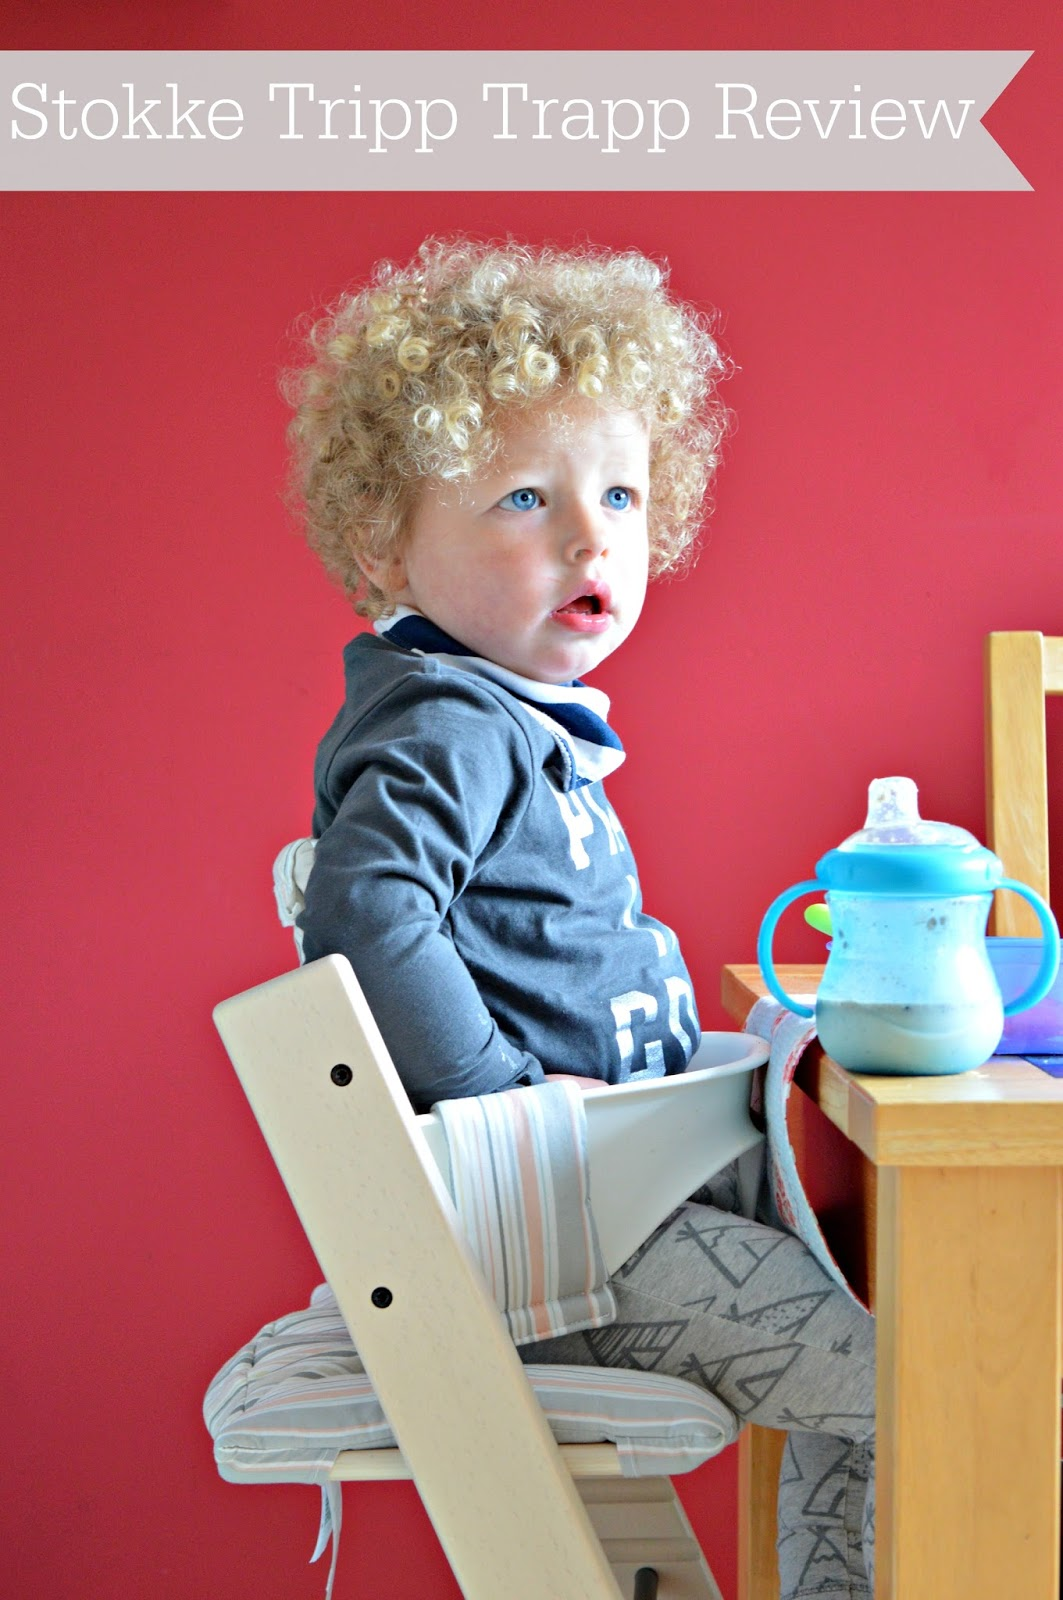 Stokke tripp trapp chair review dolly dowsie for Tripp trapp stokke amazon